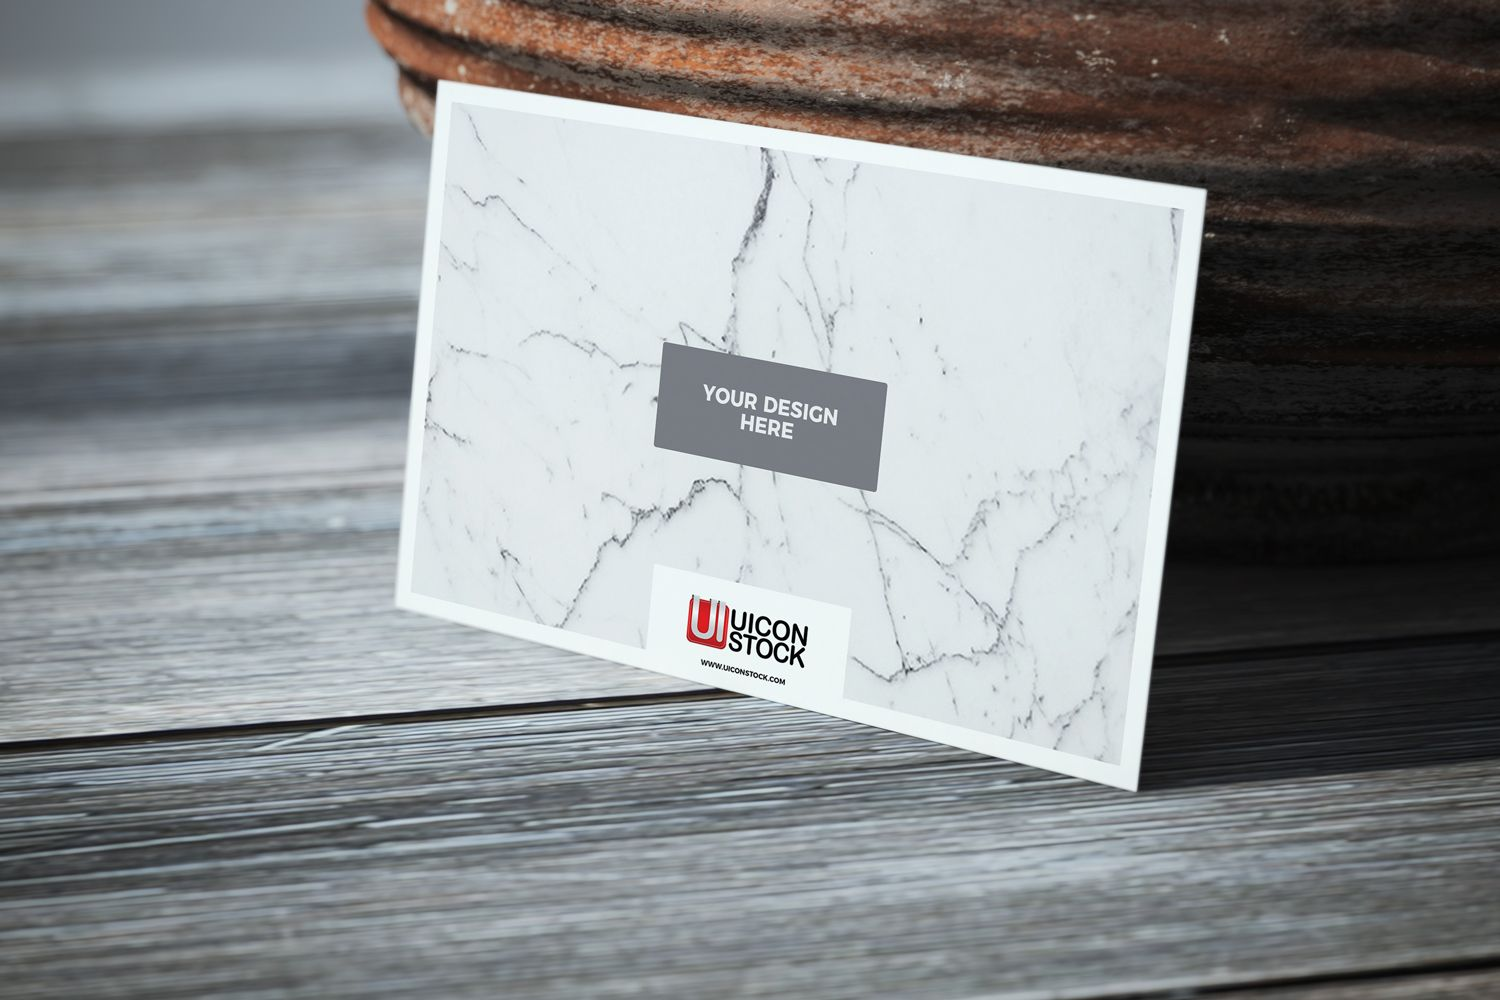 Free Texture Paper Business Card on Wooden Table Mockup | Wooden ...